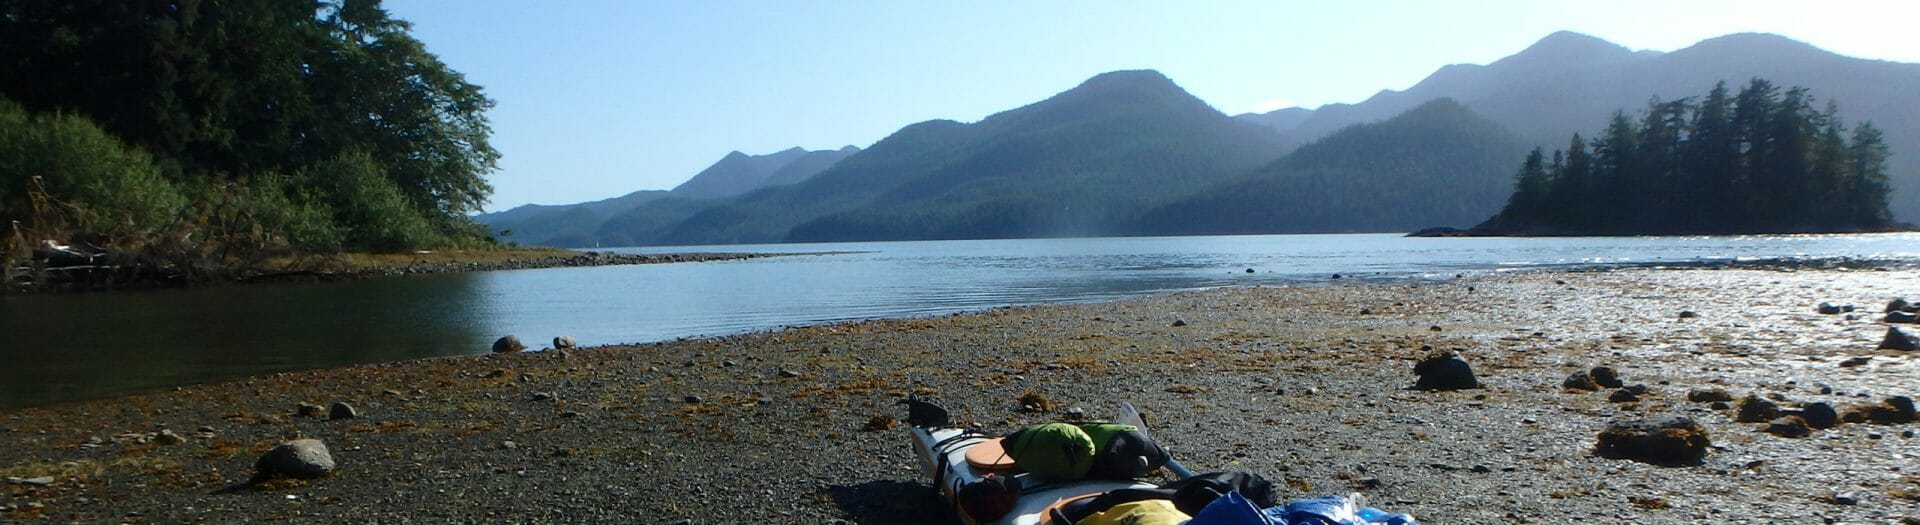 Kayak on a beach. Still water and tree covered hills in the distance.